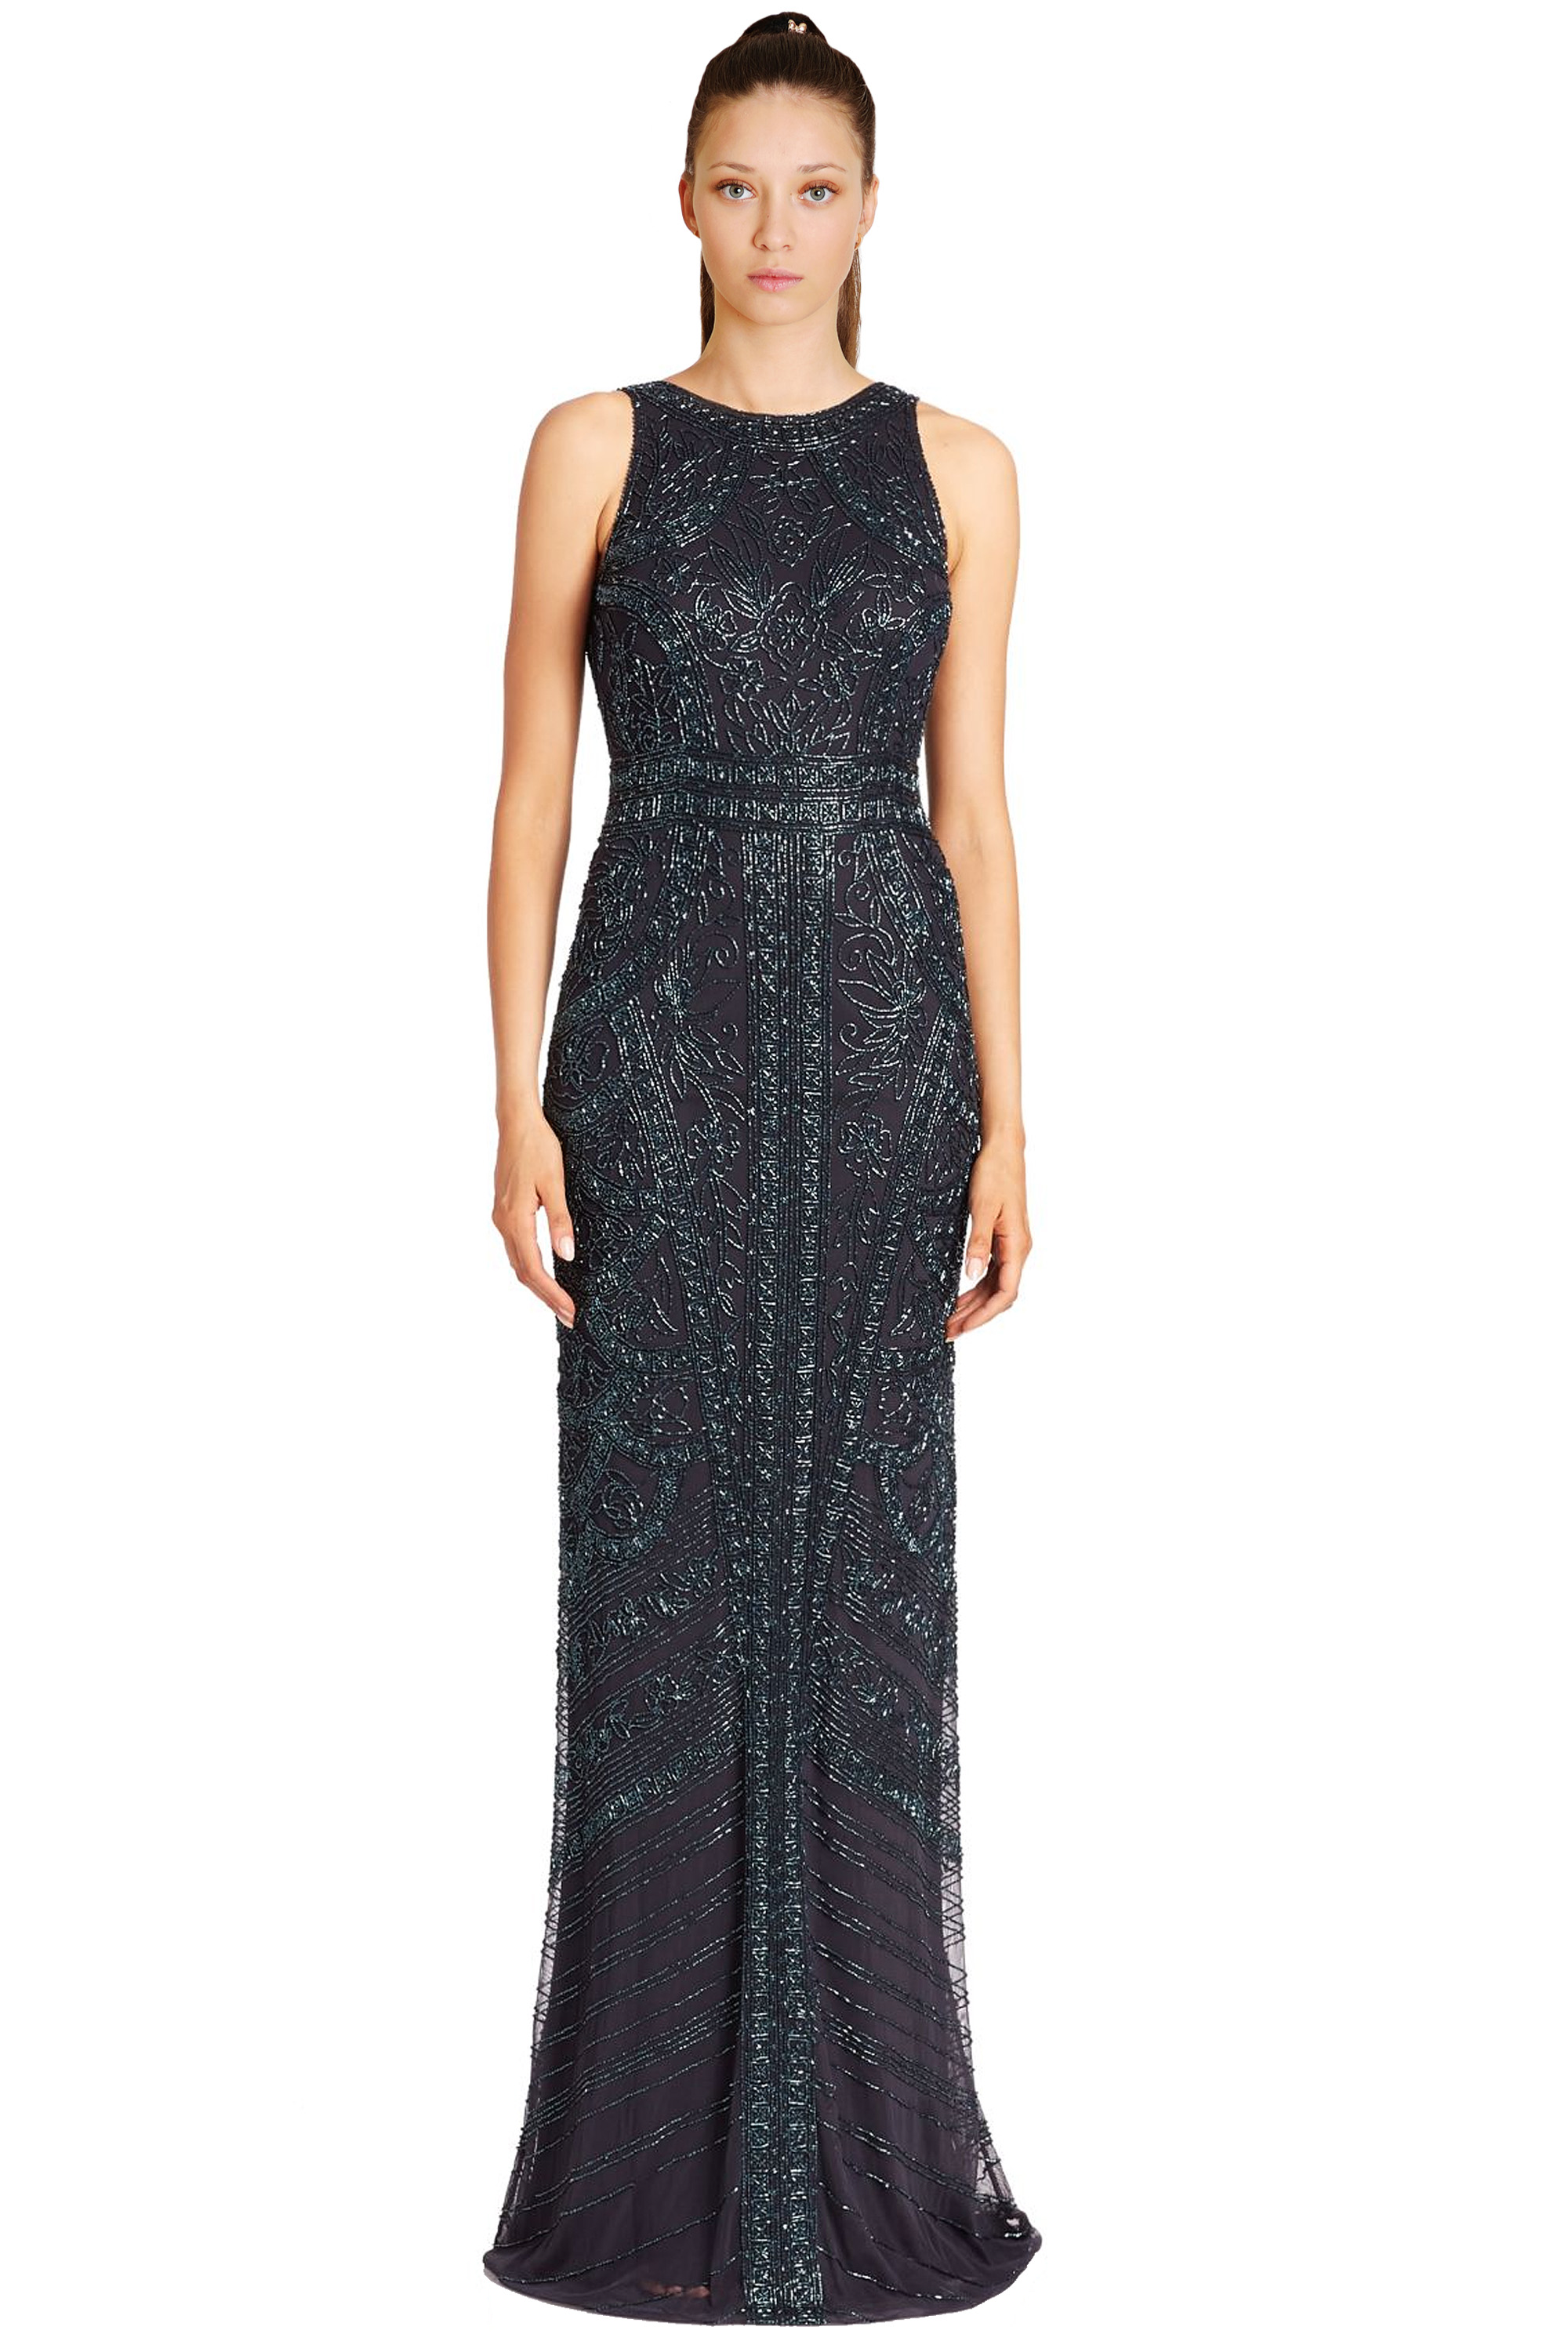 Theia Peacock Blue Floral Sequined Sleeveless Evening Gown Dress 12 ...